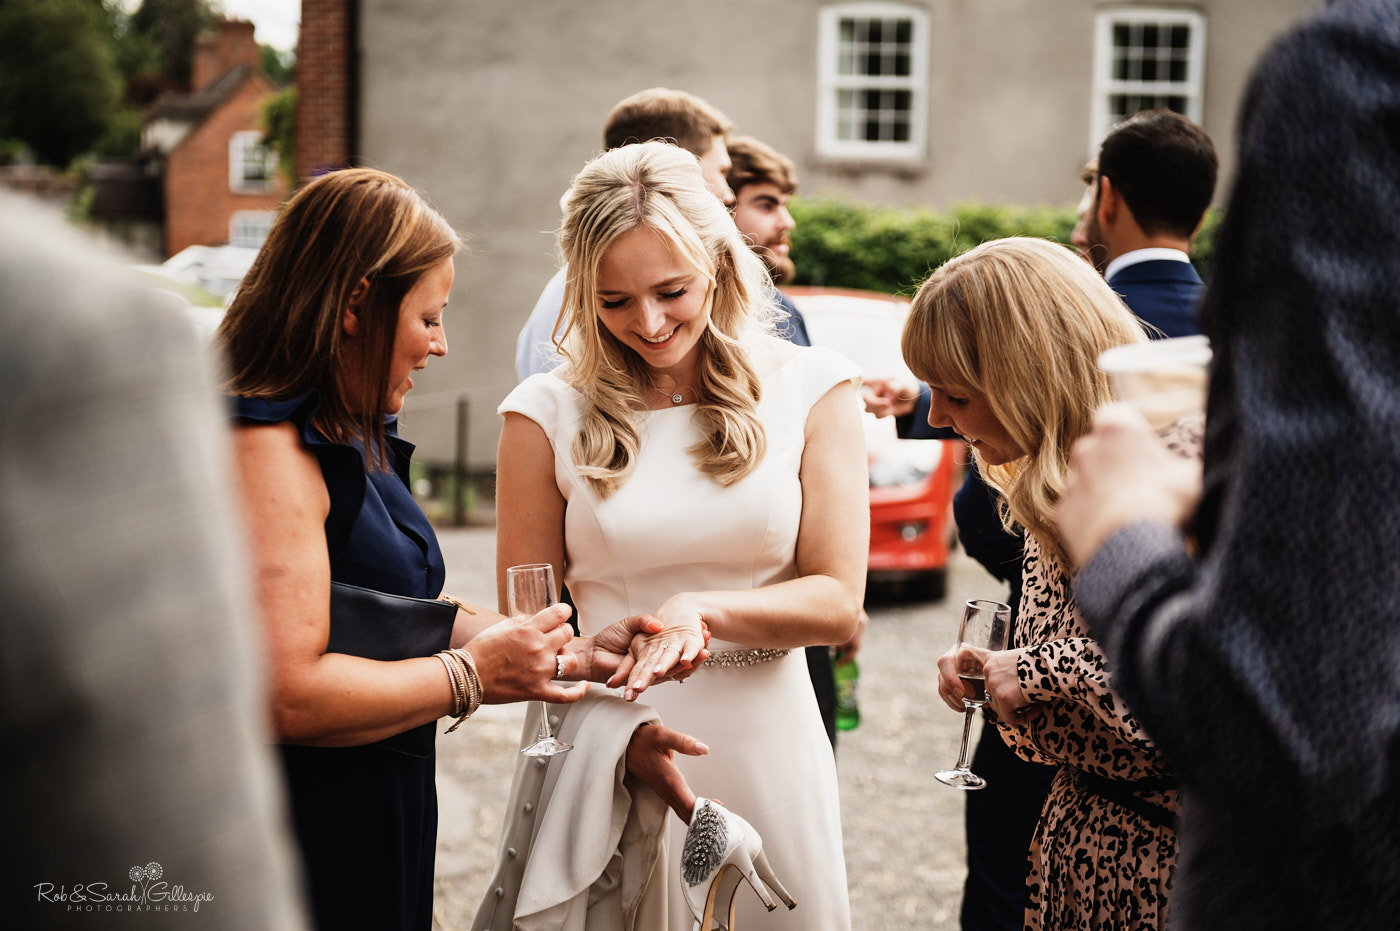 Wedding at Belbroughton Church Hall in Worcestershire